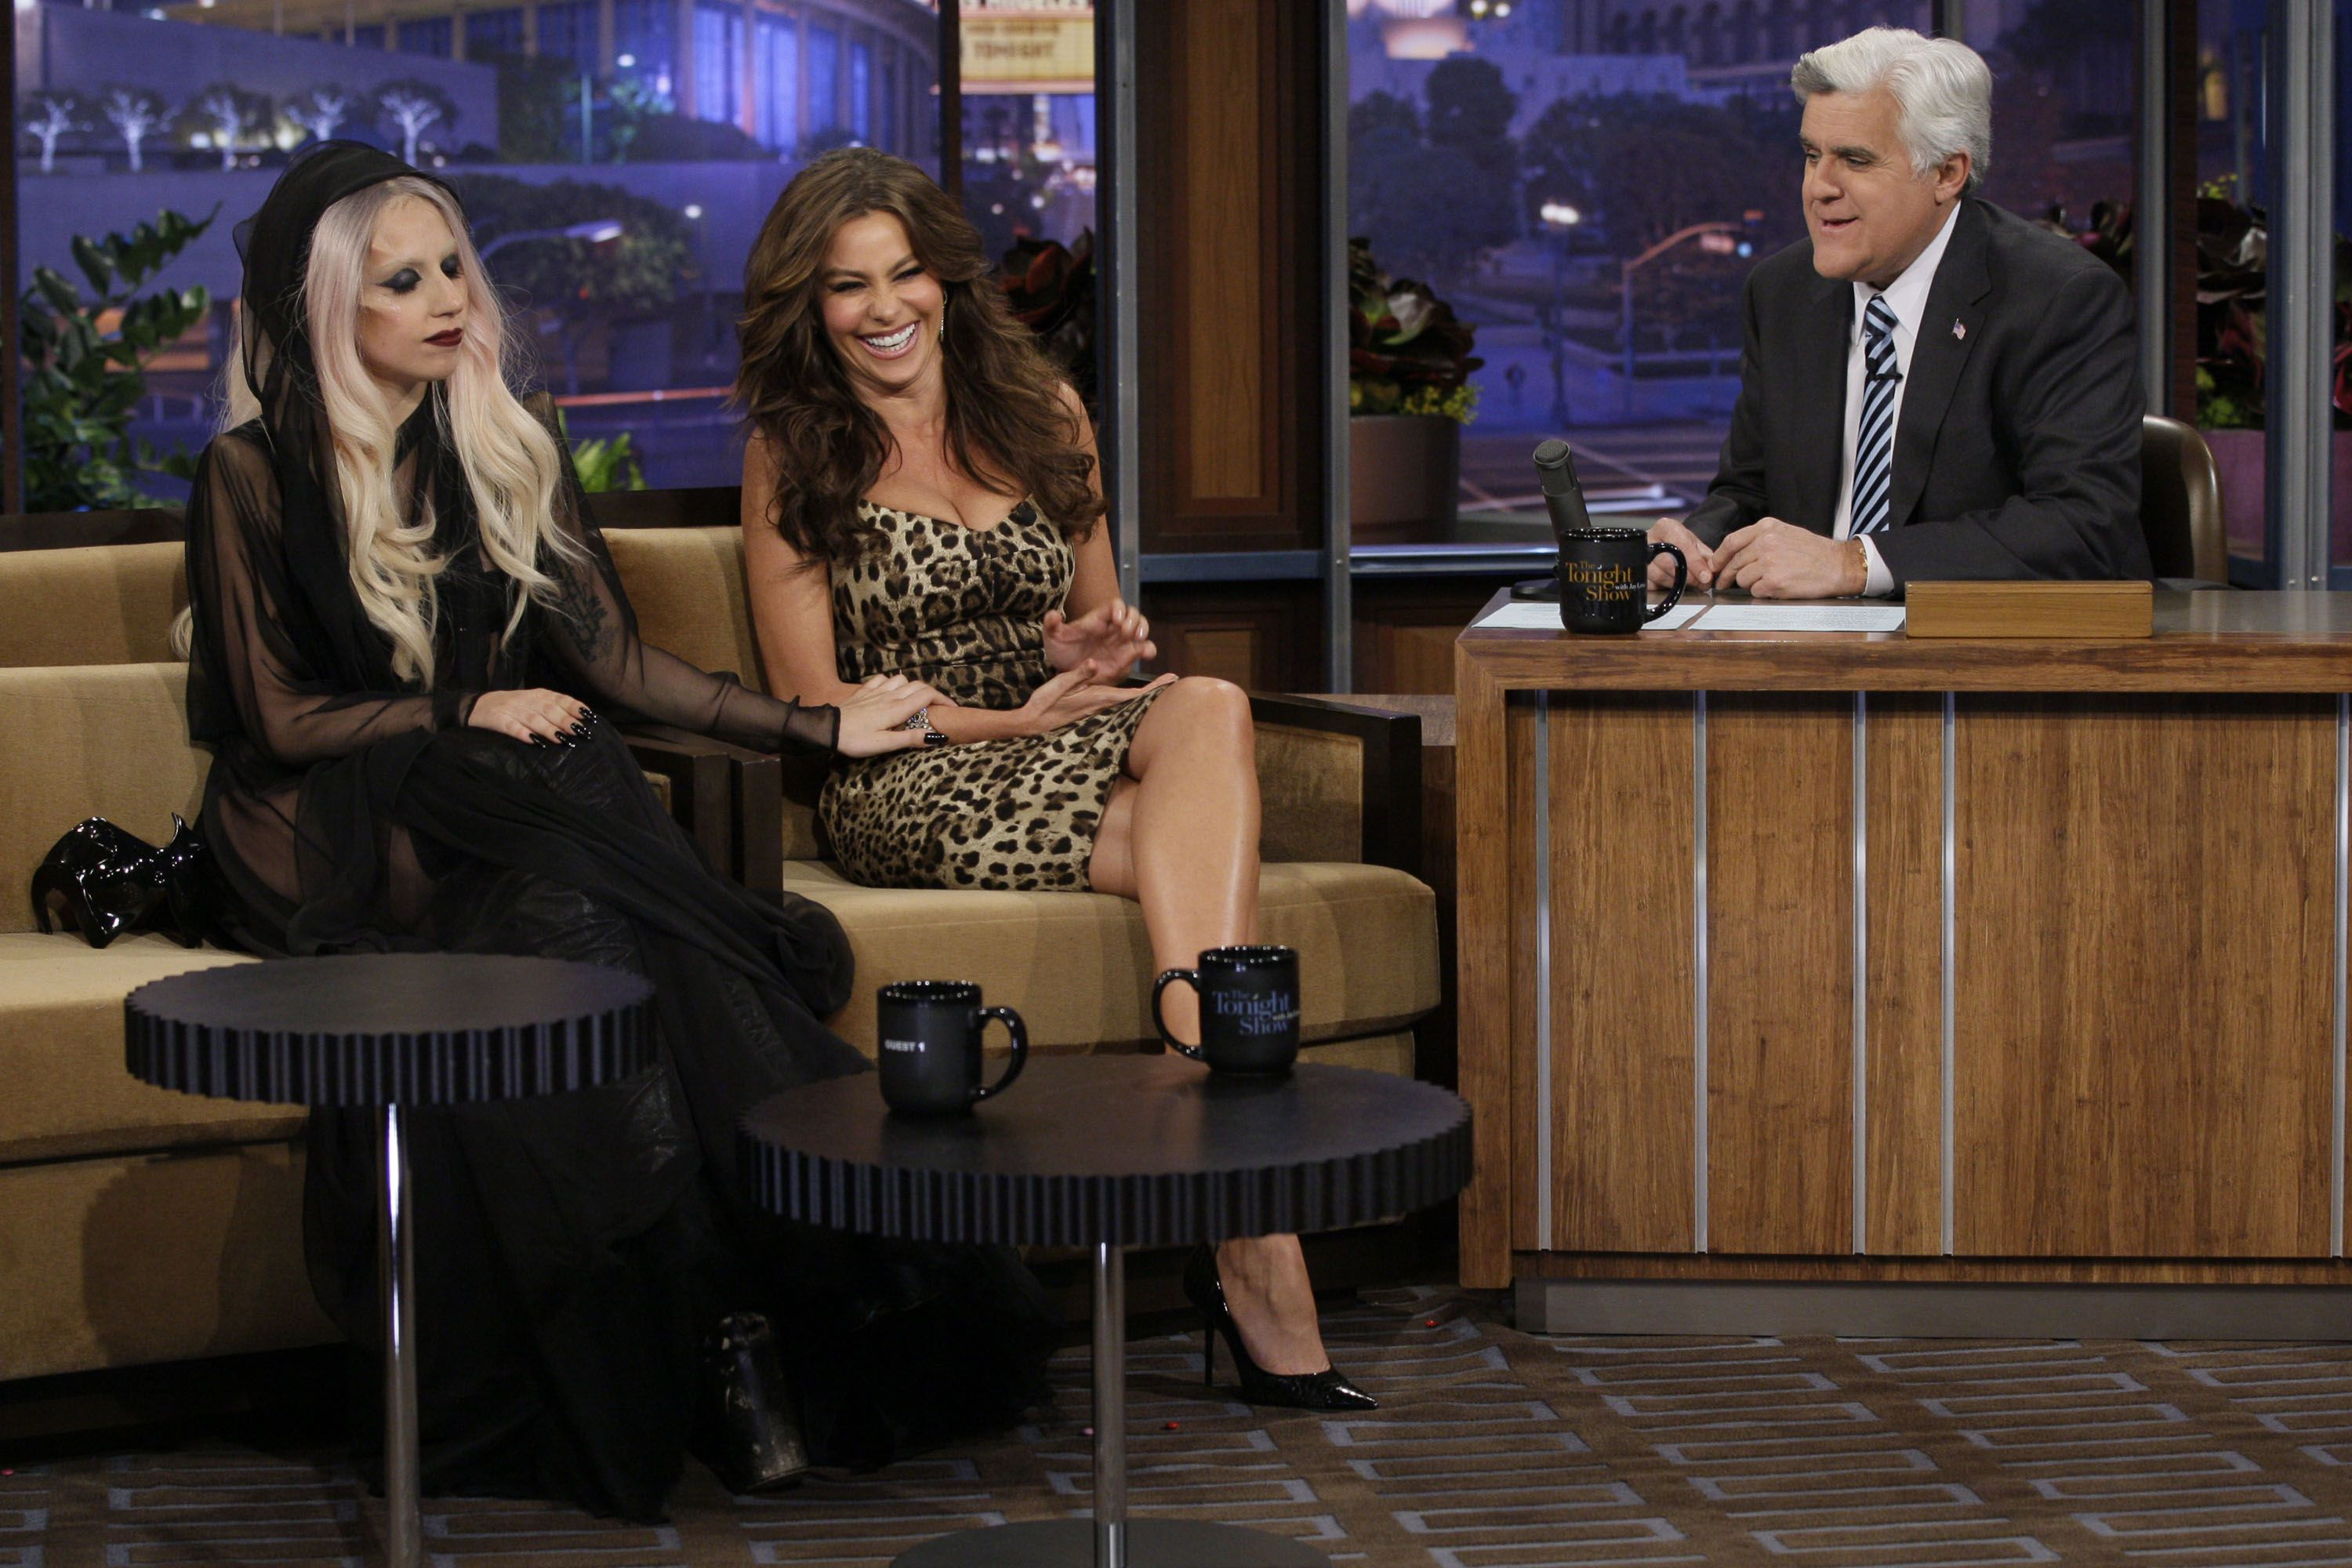 File:2-14-11 At The Tonight Show with Jay Leno - Interview 006.jpg